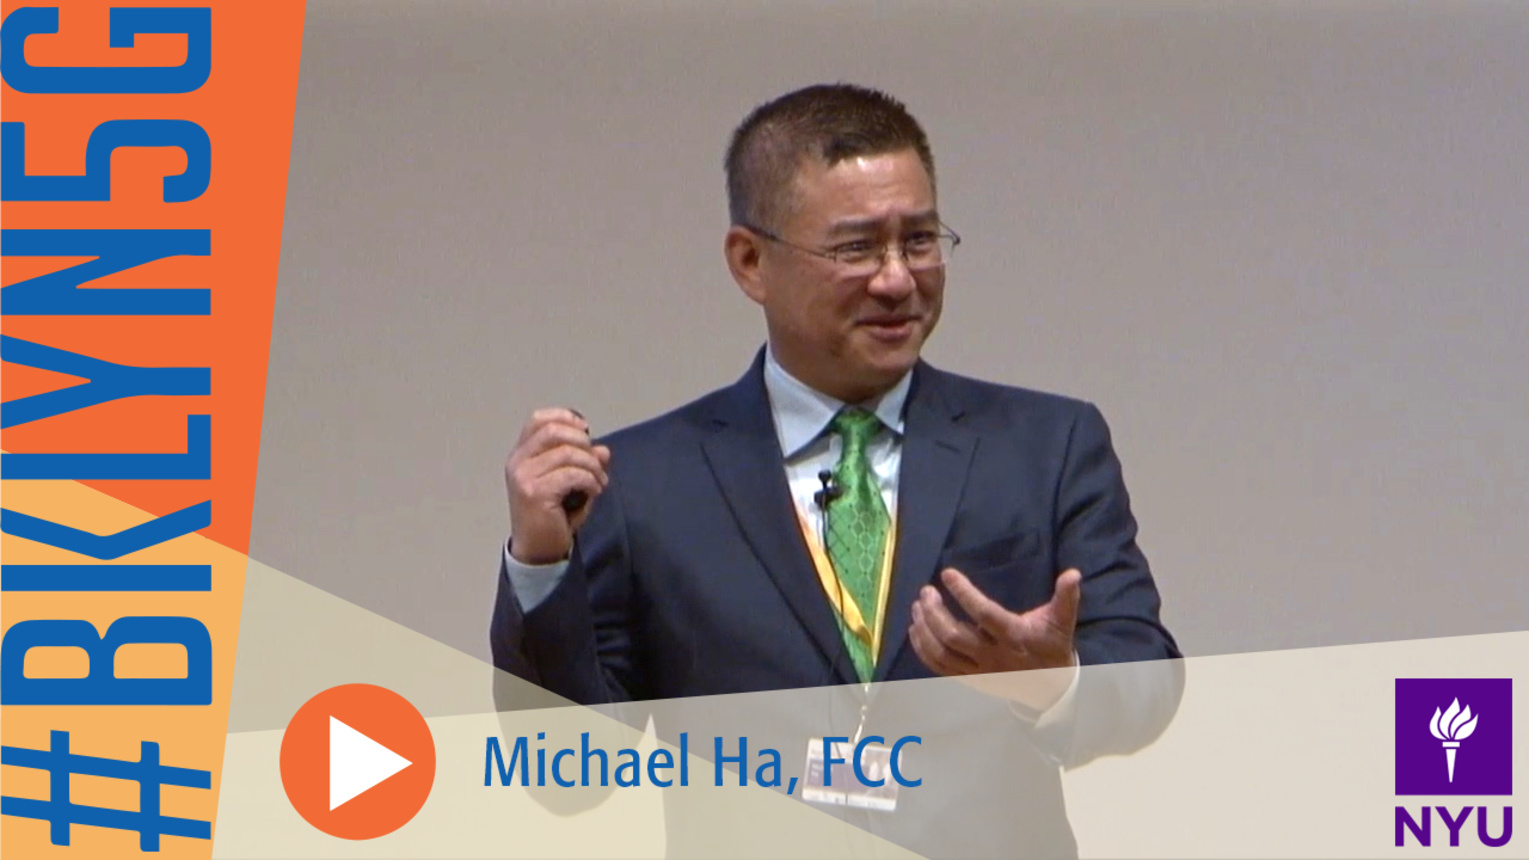 Brooklyn 5G Summit 2014: Michael Ha on US Spectrum Status for Higher Speed